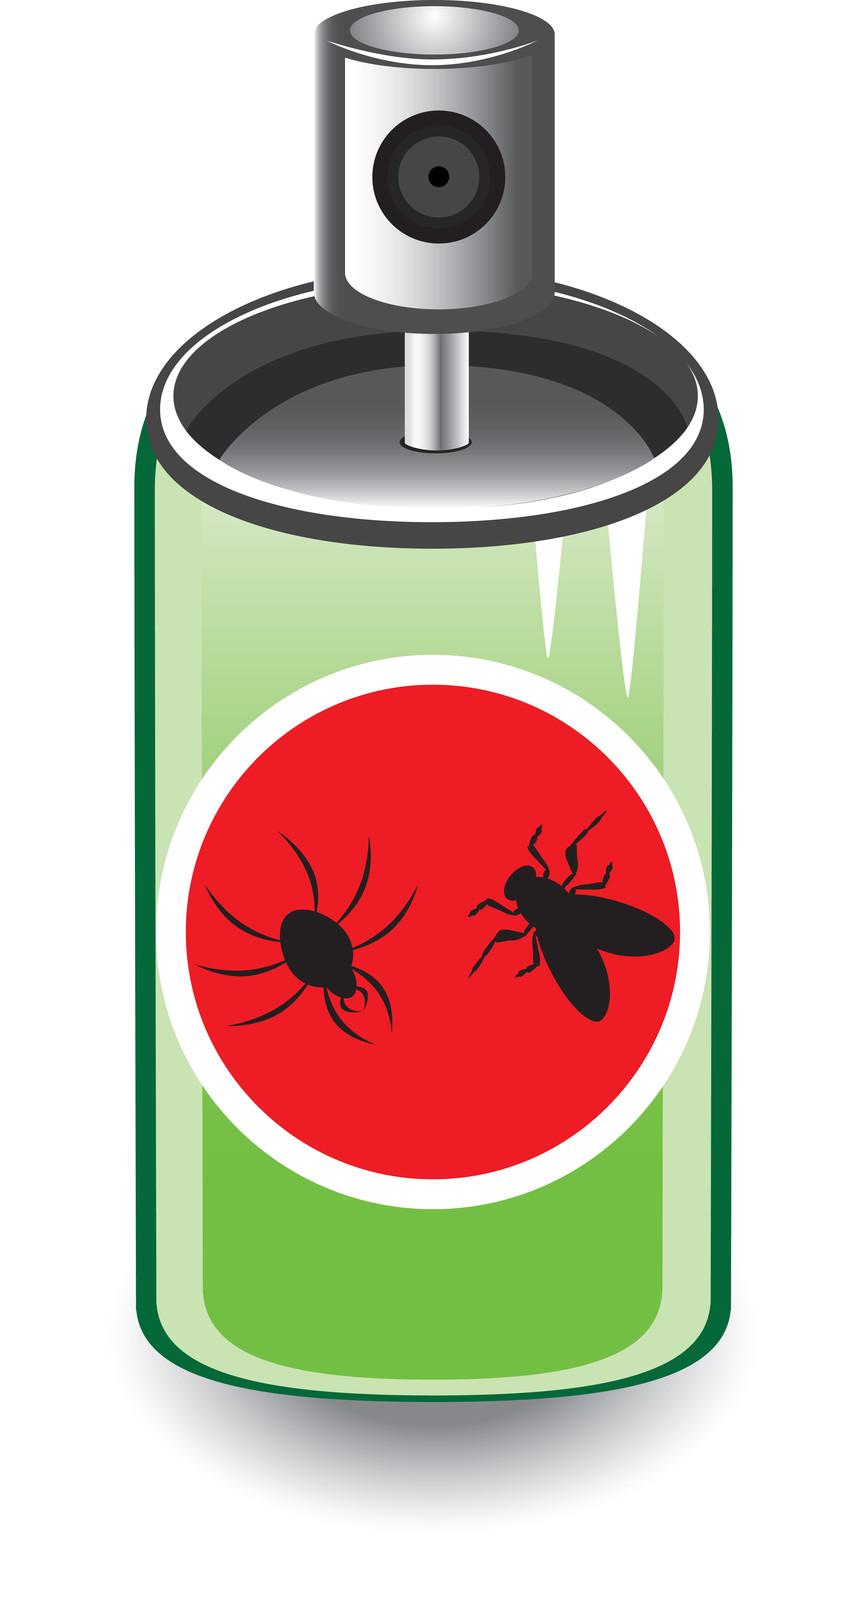 Housefly Spray